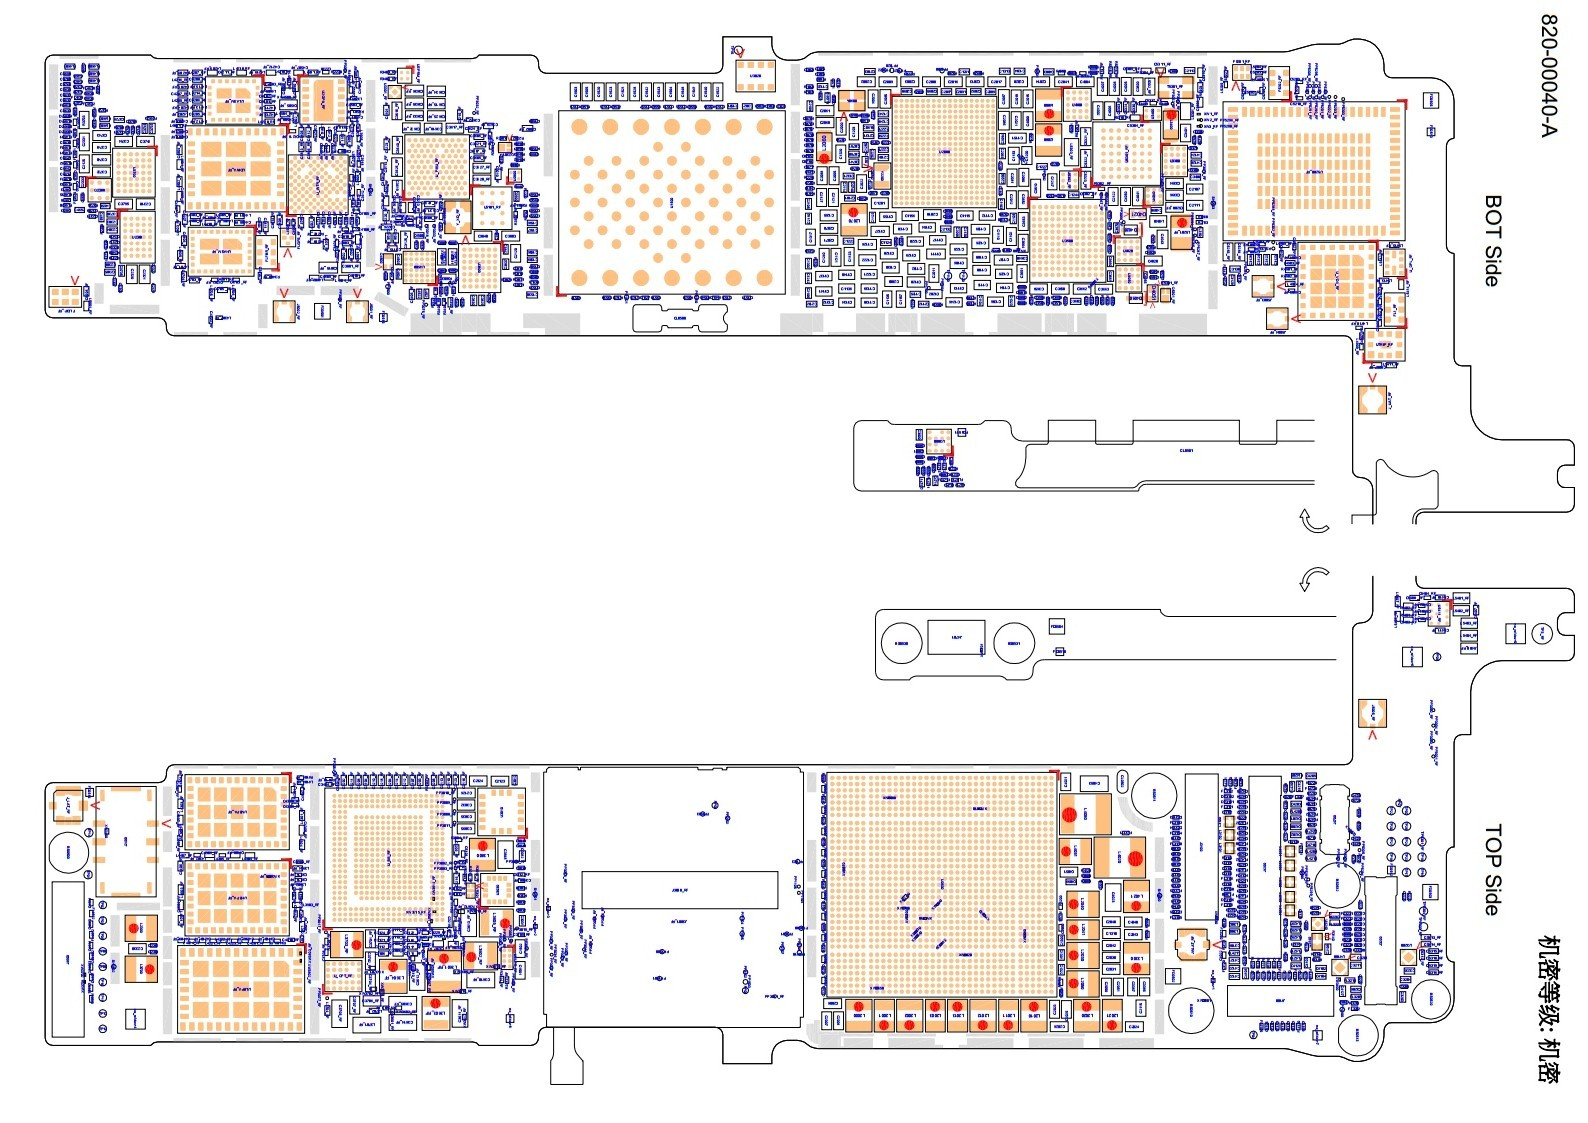 schematic Page2 05 iphone 6s n66 boardview Page1 Schematic for iPhone 6s Plus